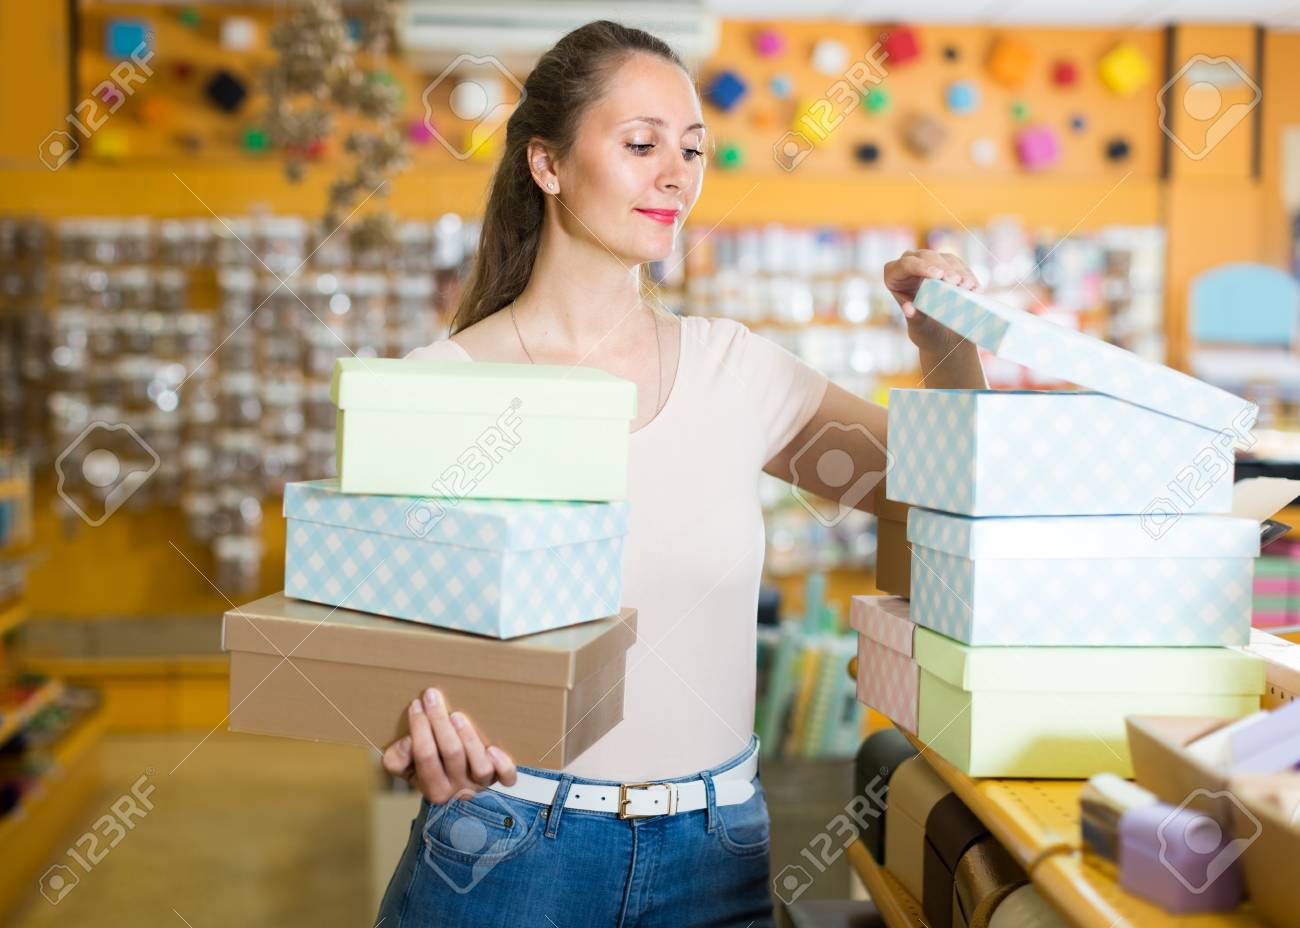 Woman 20 30 Years Old Is Choosing Light Boxes For Gifts In Store